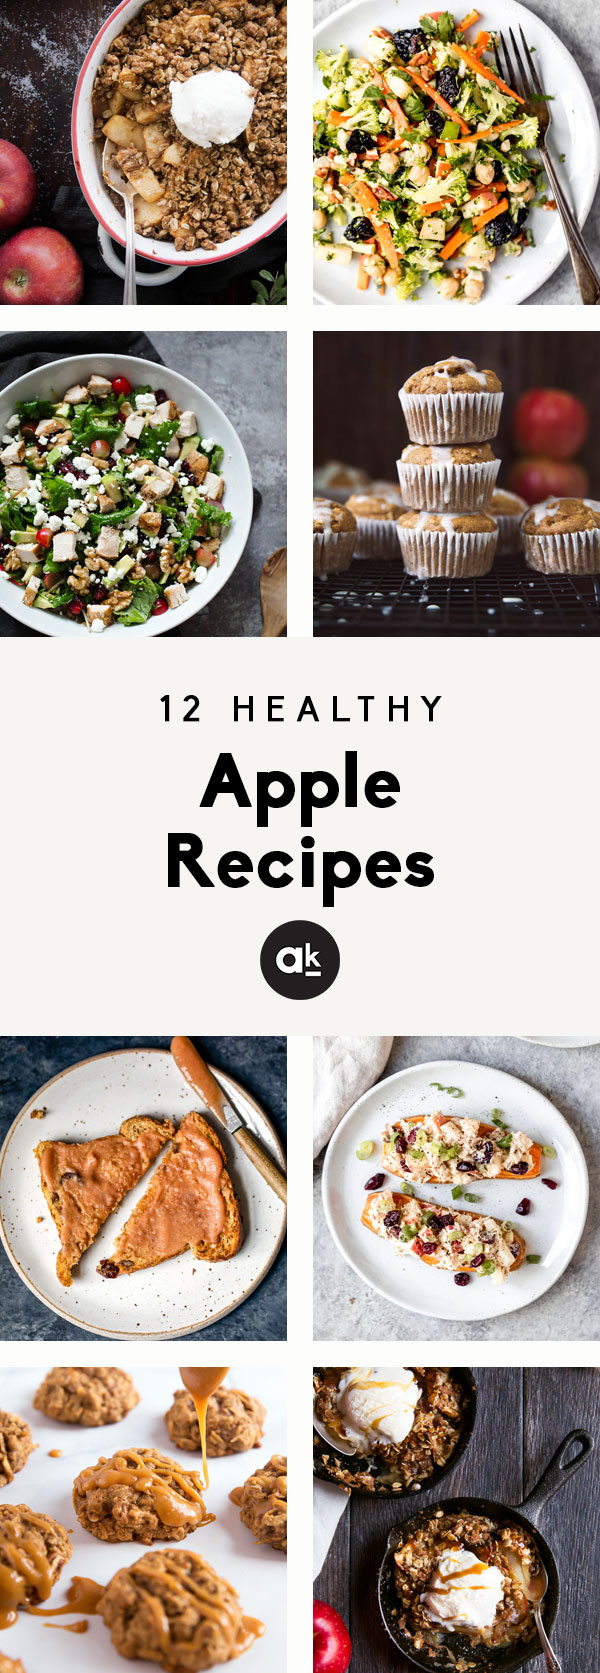 The BEST healthy apple recipes to make all season long! From delicious apple muffins to fresh, filling salads, these recipes are the perfect excuse to head to your local apple orchard.